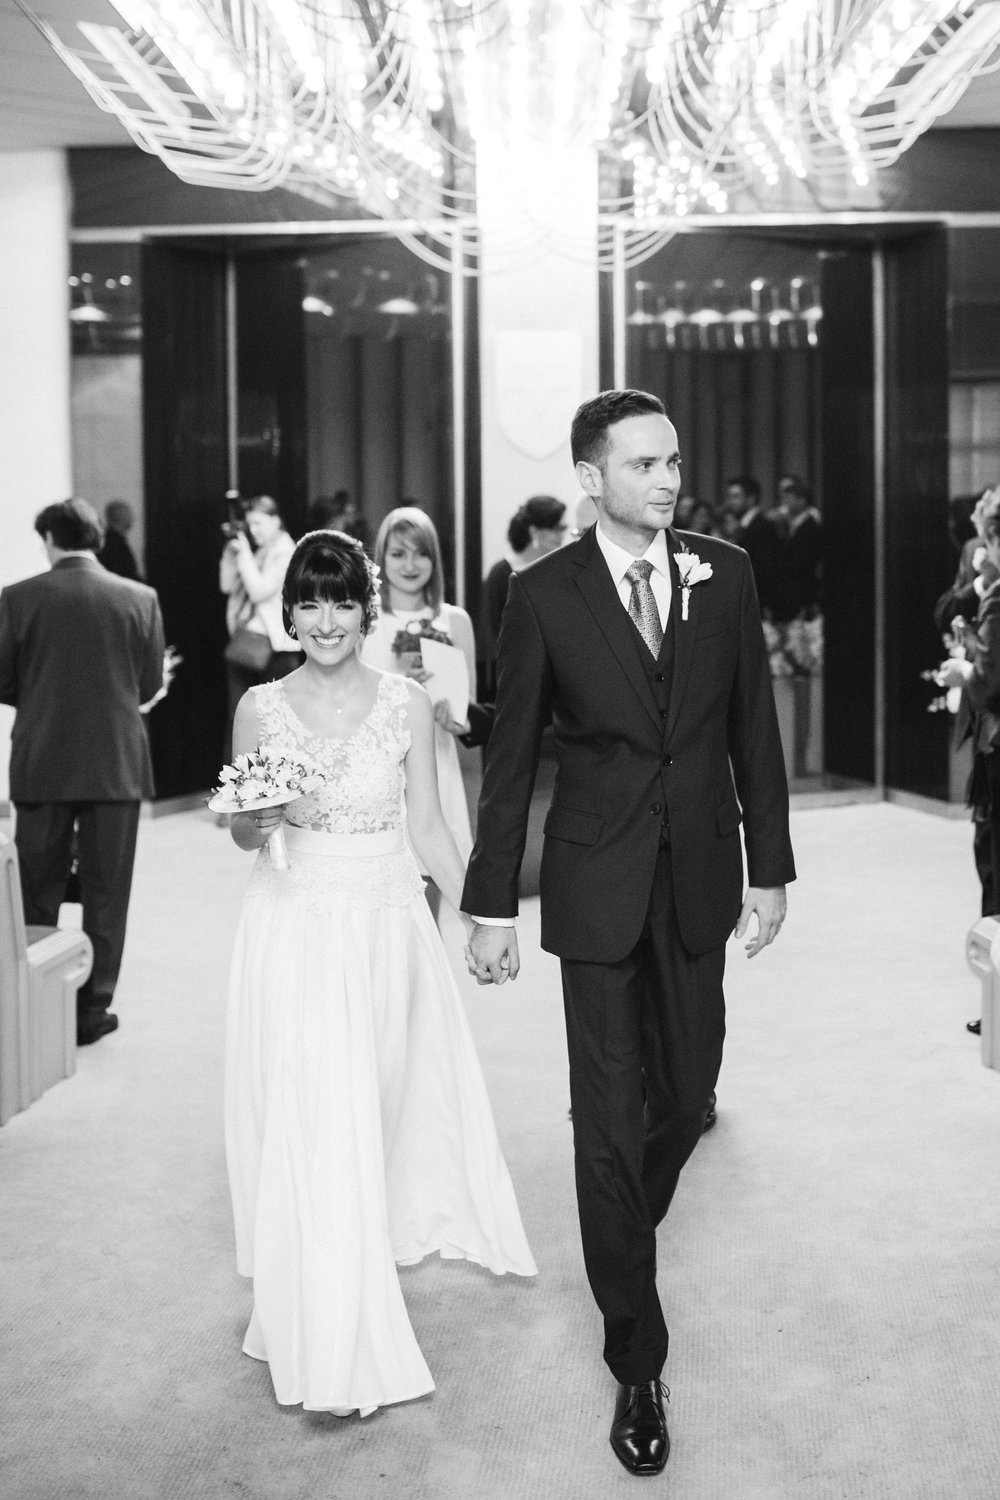 destination-wedding-photographer-bratislava-slovakia-europe-ceremony-bw-newlyweds-aisle-happy.jpg